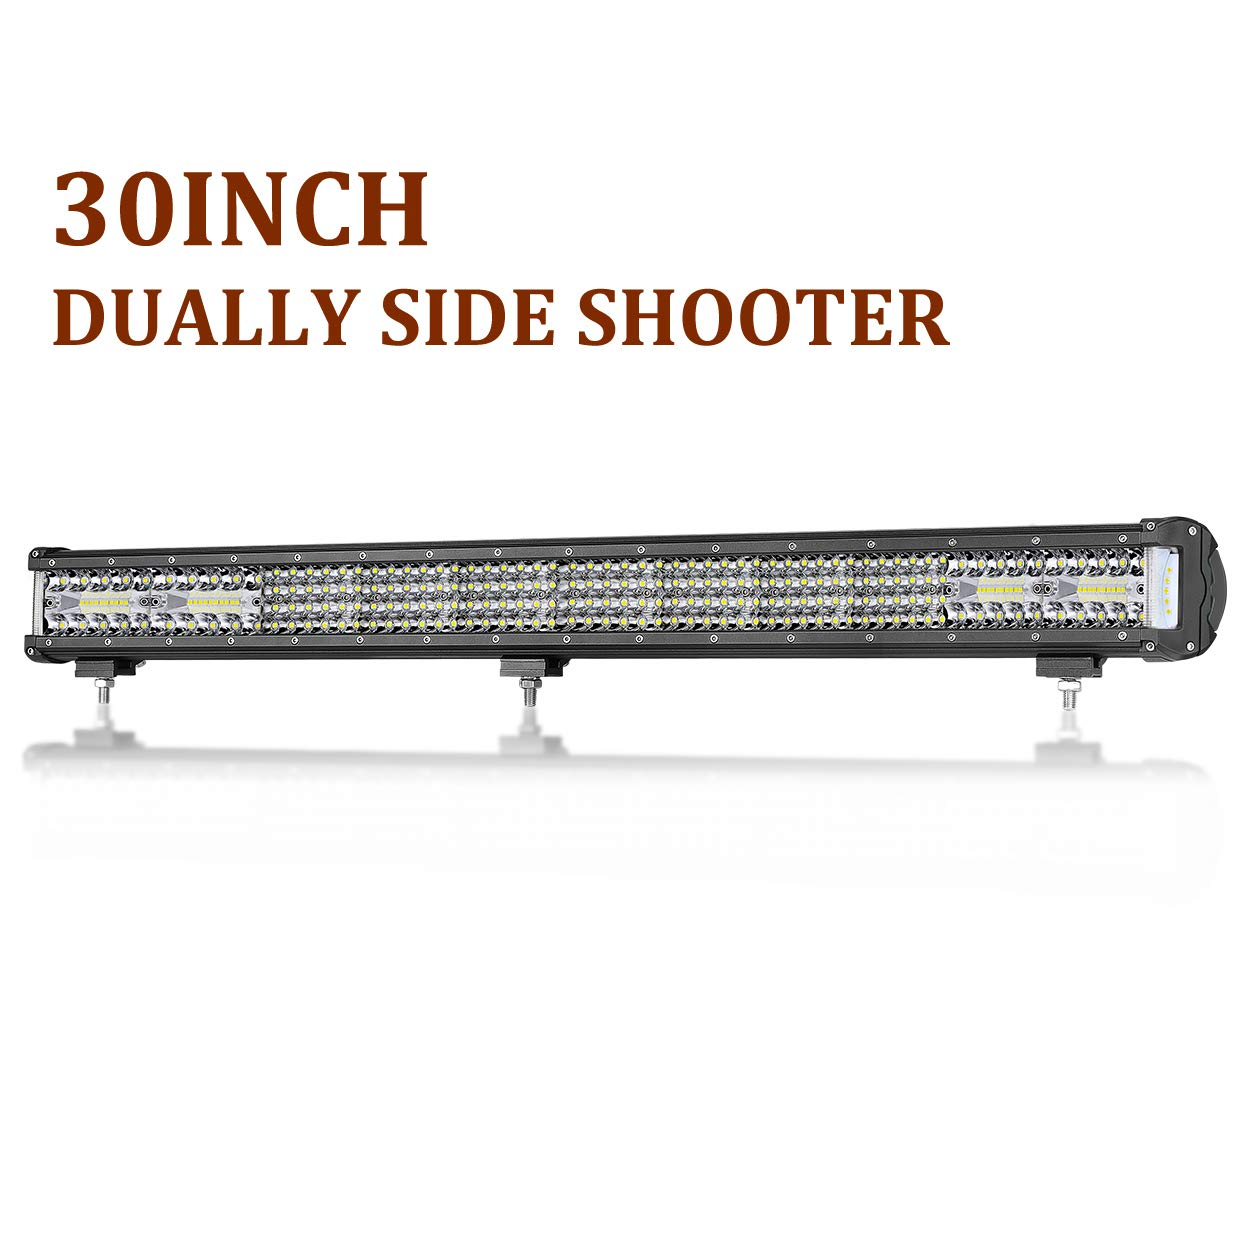 Side Shooter LED Lights, SWATOW 4x4 2pcs 120W 4 inch LED Pods Side Shot LED Spotlight Off Road Driving Lights Triple Row LED Work Lights Flood Combo Lighting for ATV Jeep A Pillar Truck Boat